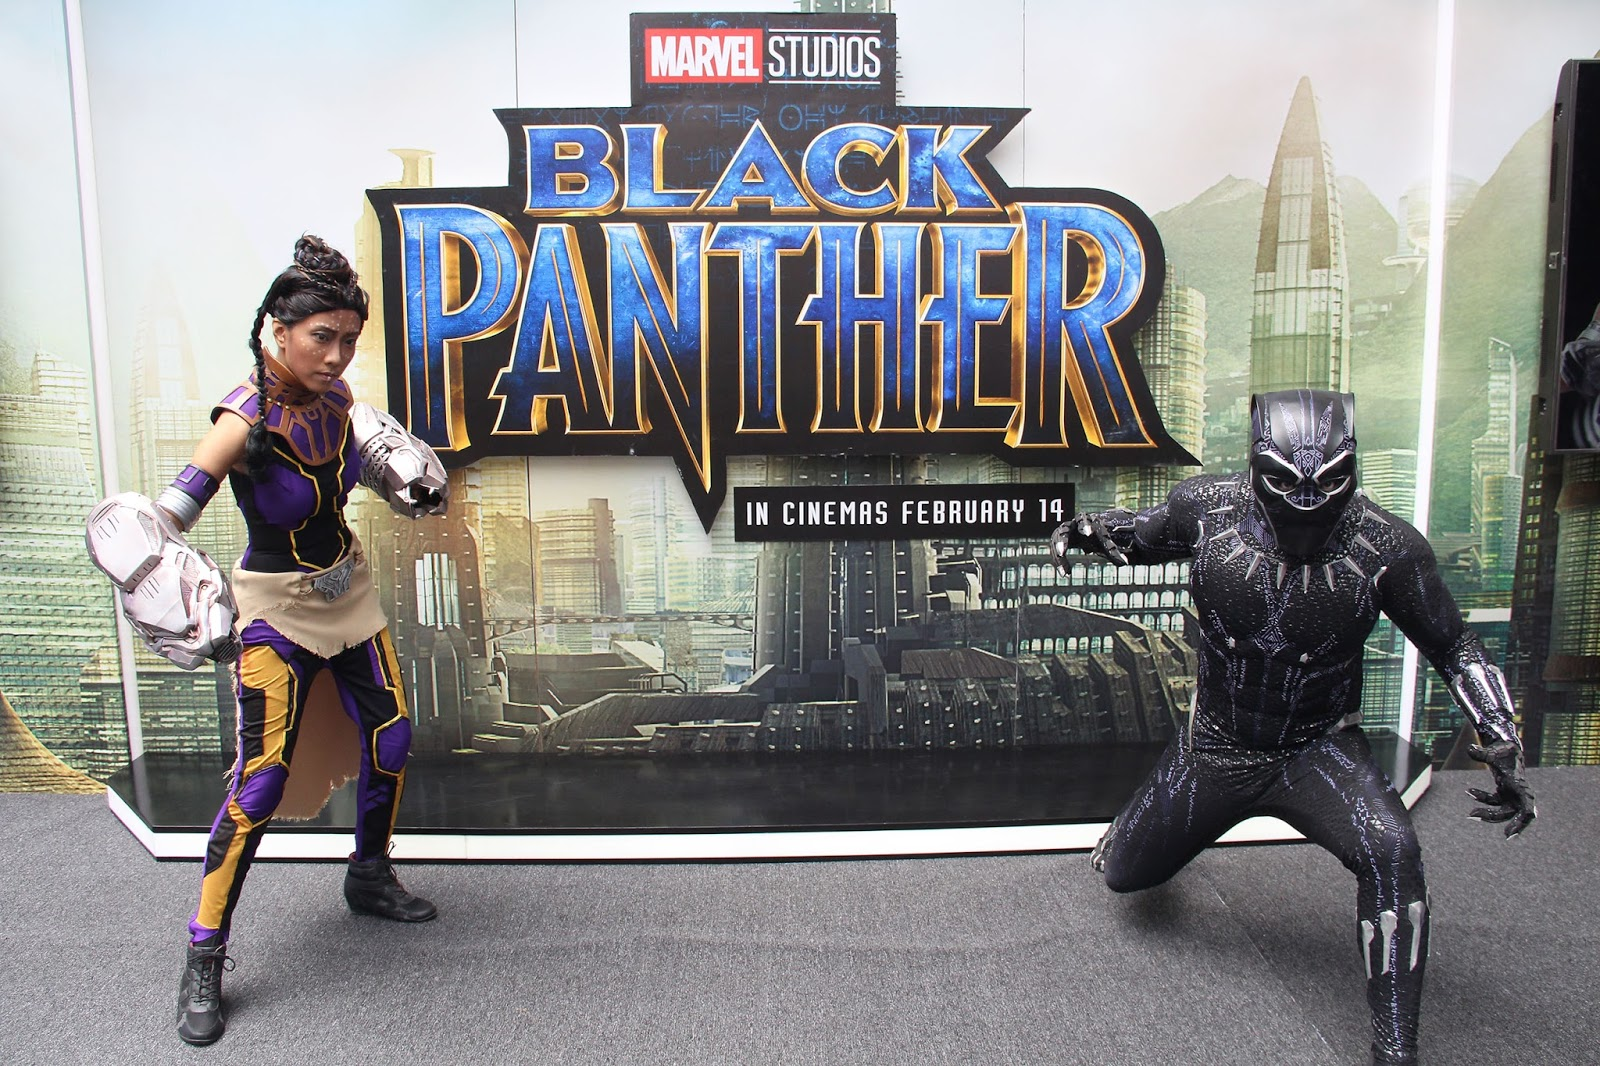 c63c5e715 To celebrate the theatrical release of Marvel Studios  Black Panther in  cinemas from February 14